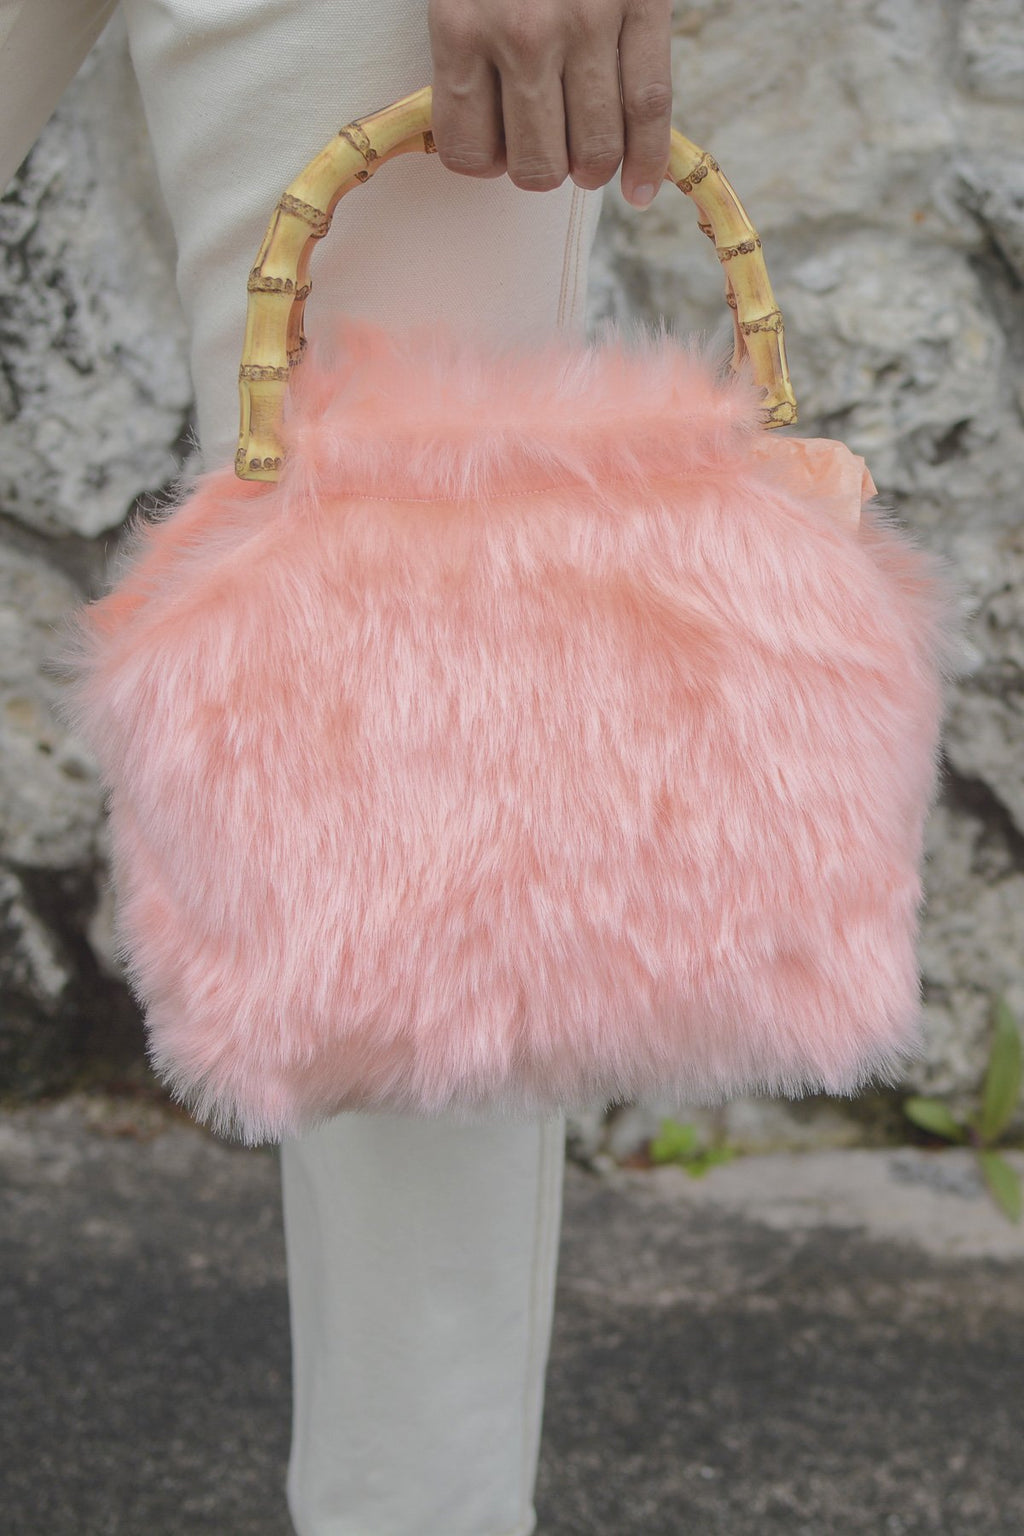 Casa Cuadra Accessories Bags Lykke Wullf Faux Fur Bag - Pink